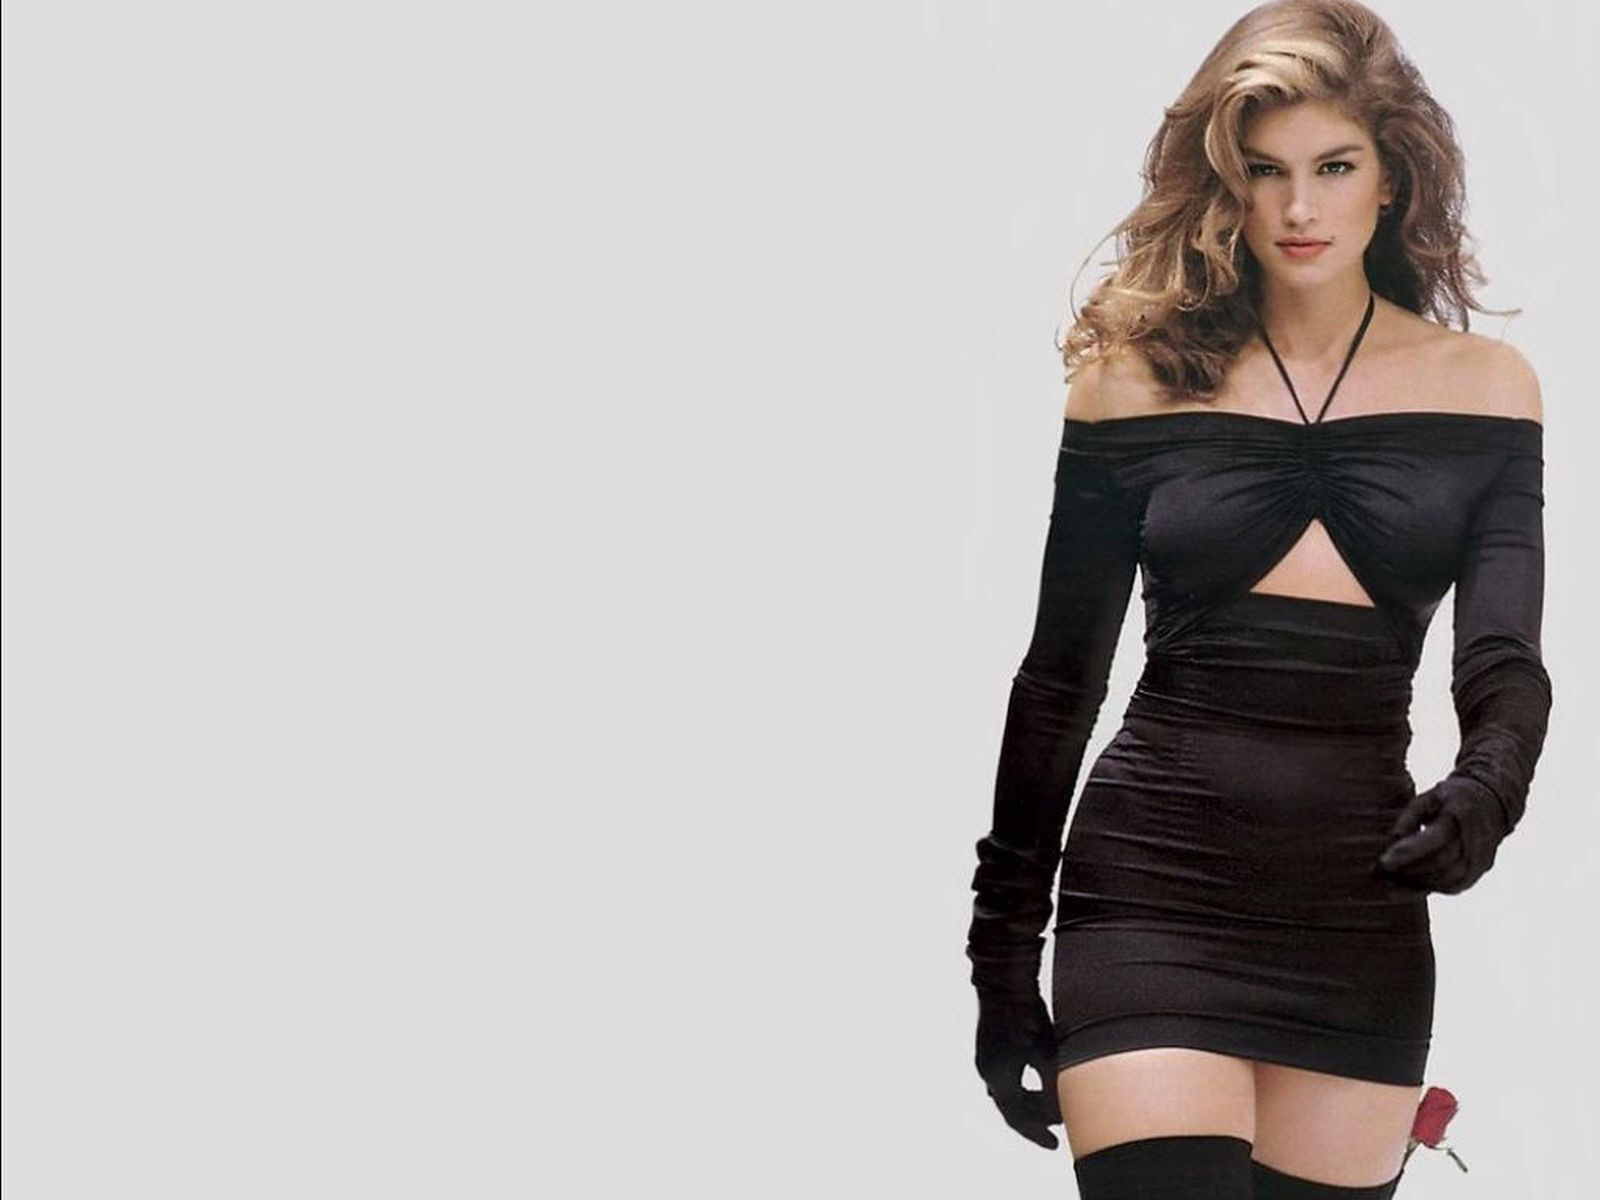 Wood Wallpaper Cindy Crawford S 250 Per Modelo Americana Hot Bollywood And